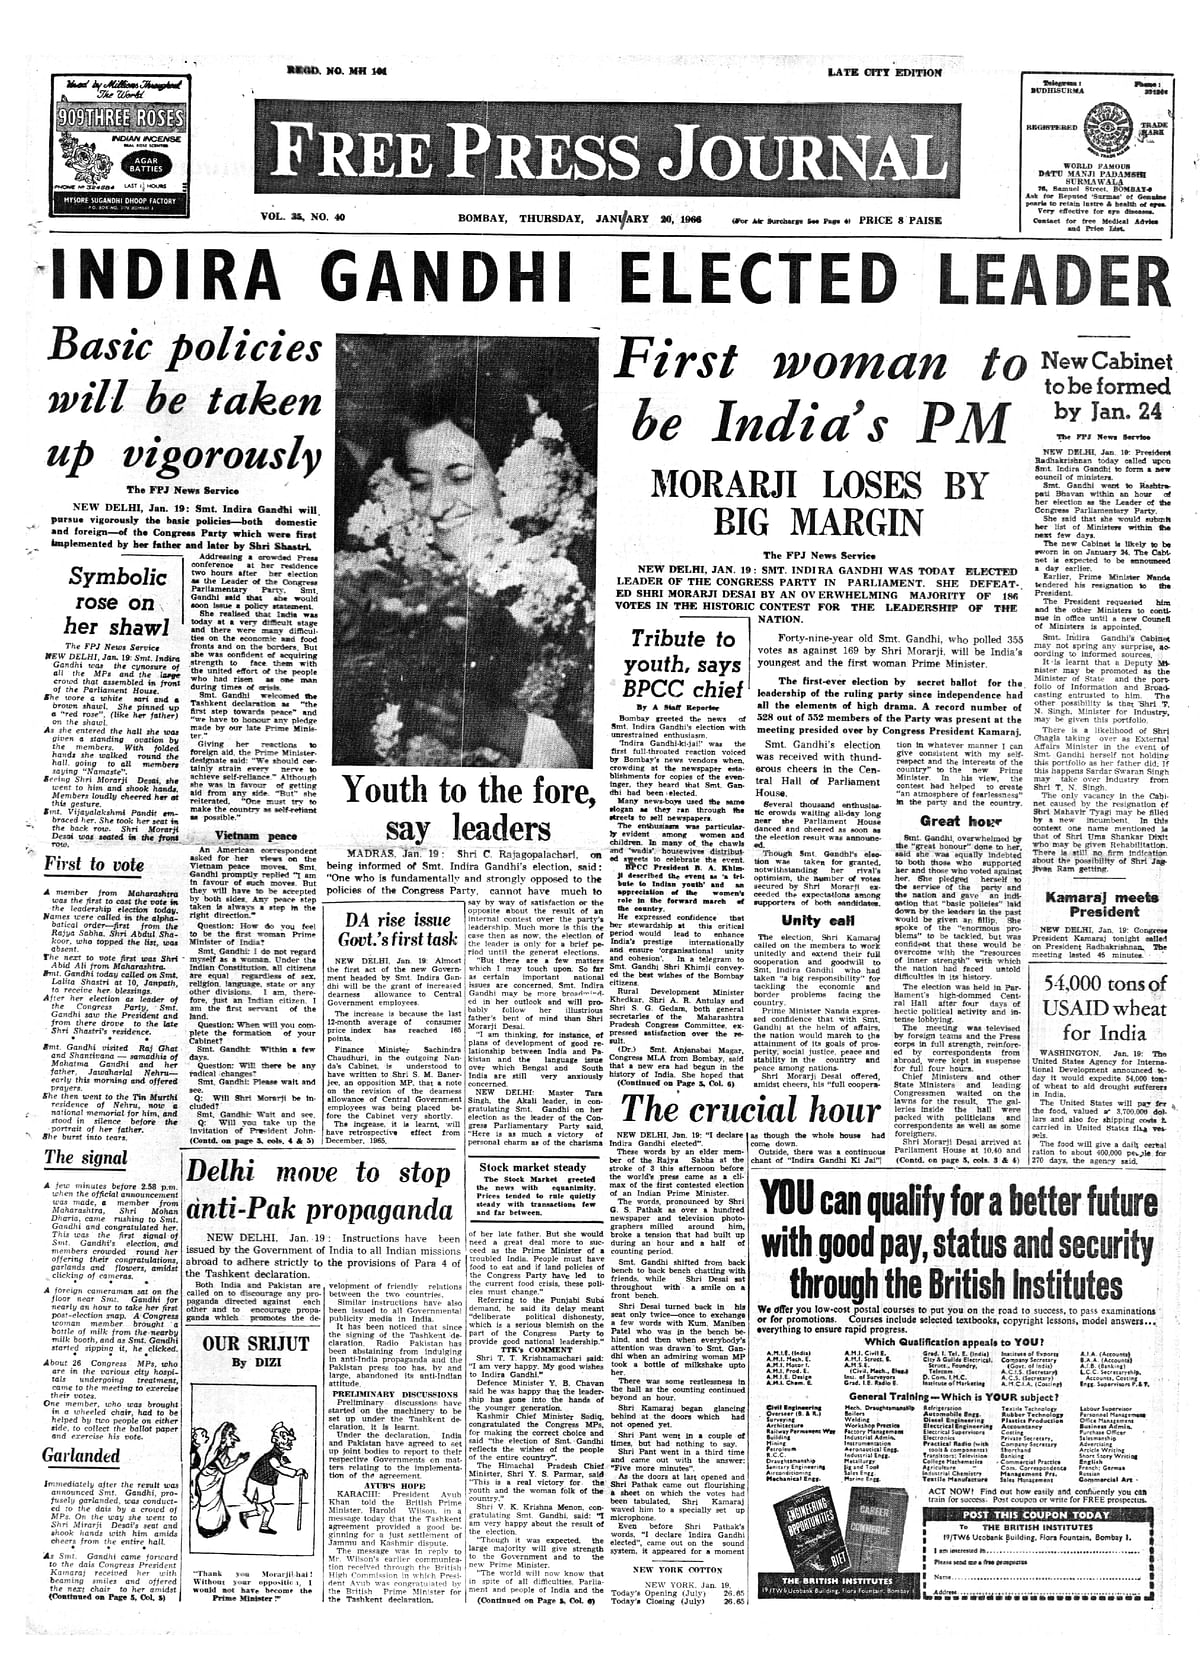 This Week in History from FPJ Archives: Change of leadership - from Indira Gandhi to Barack Obama